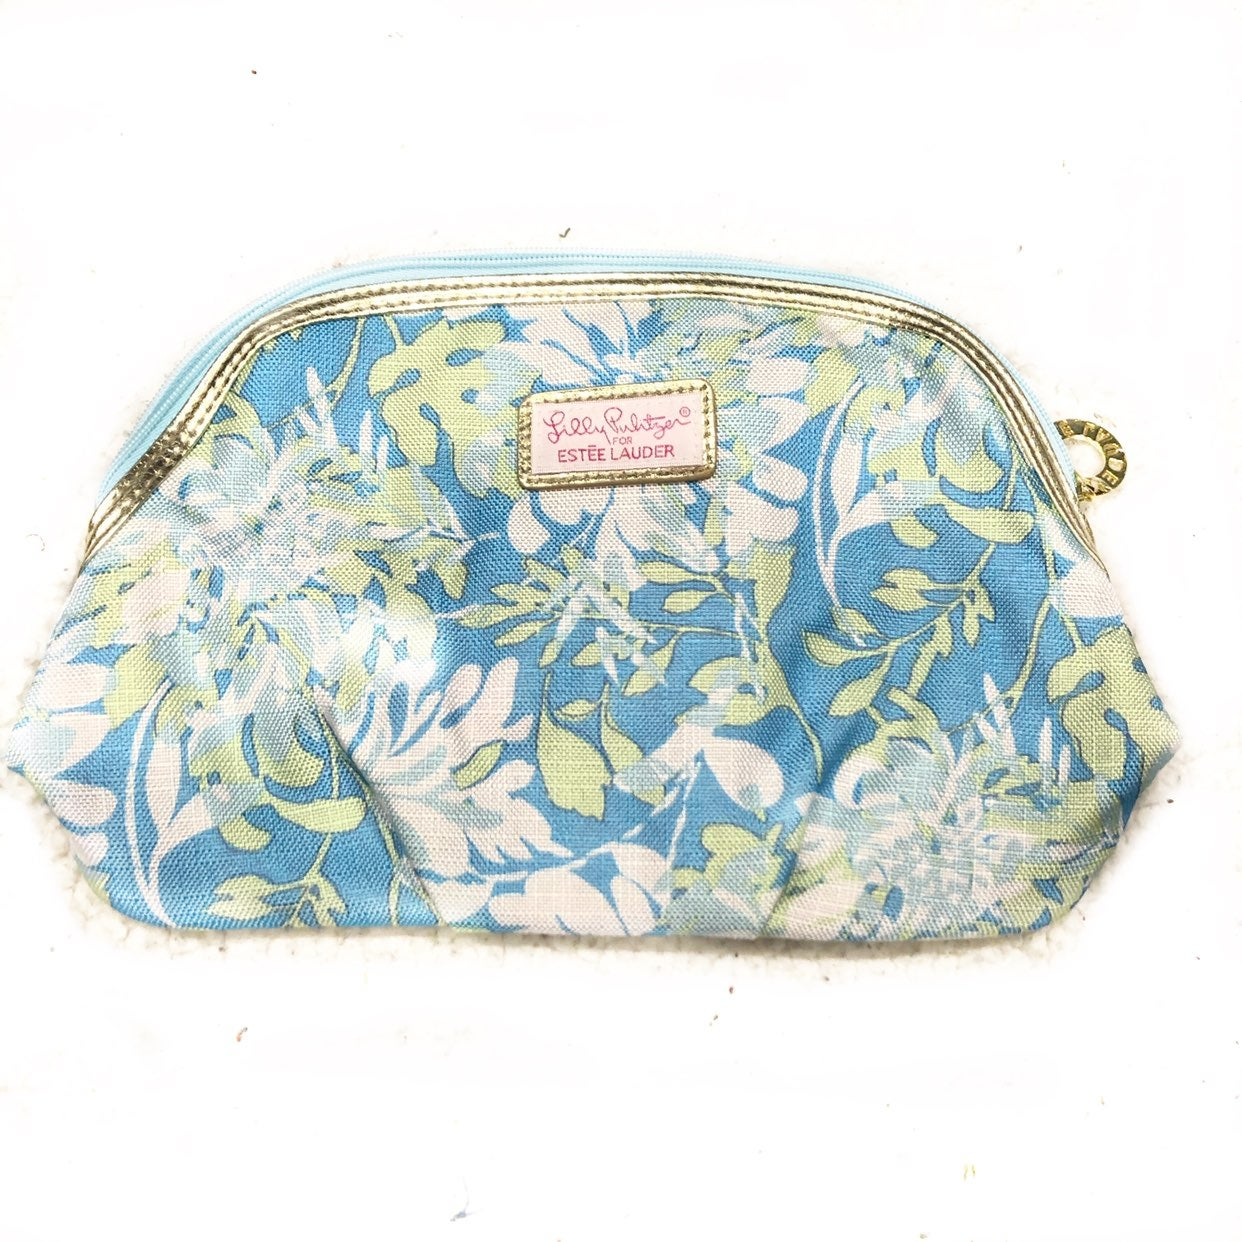 Estee Lauder Lilly Pulitzer Cosmetic Bag